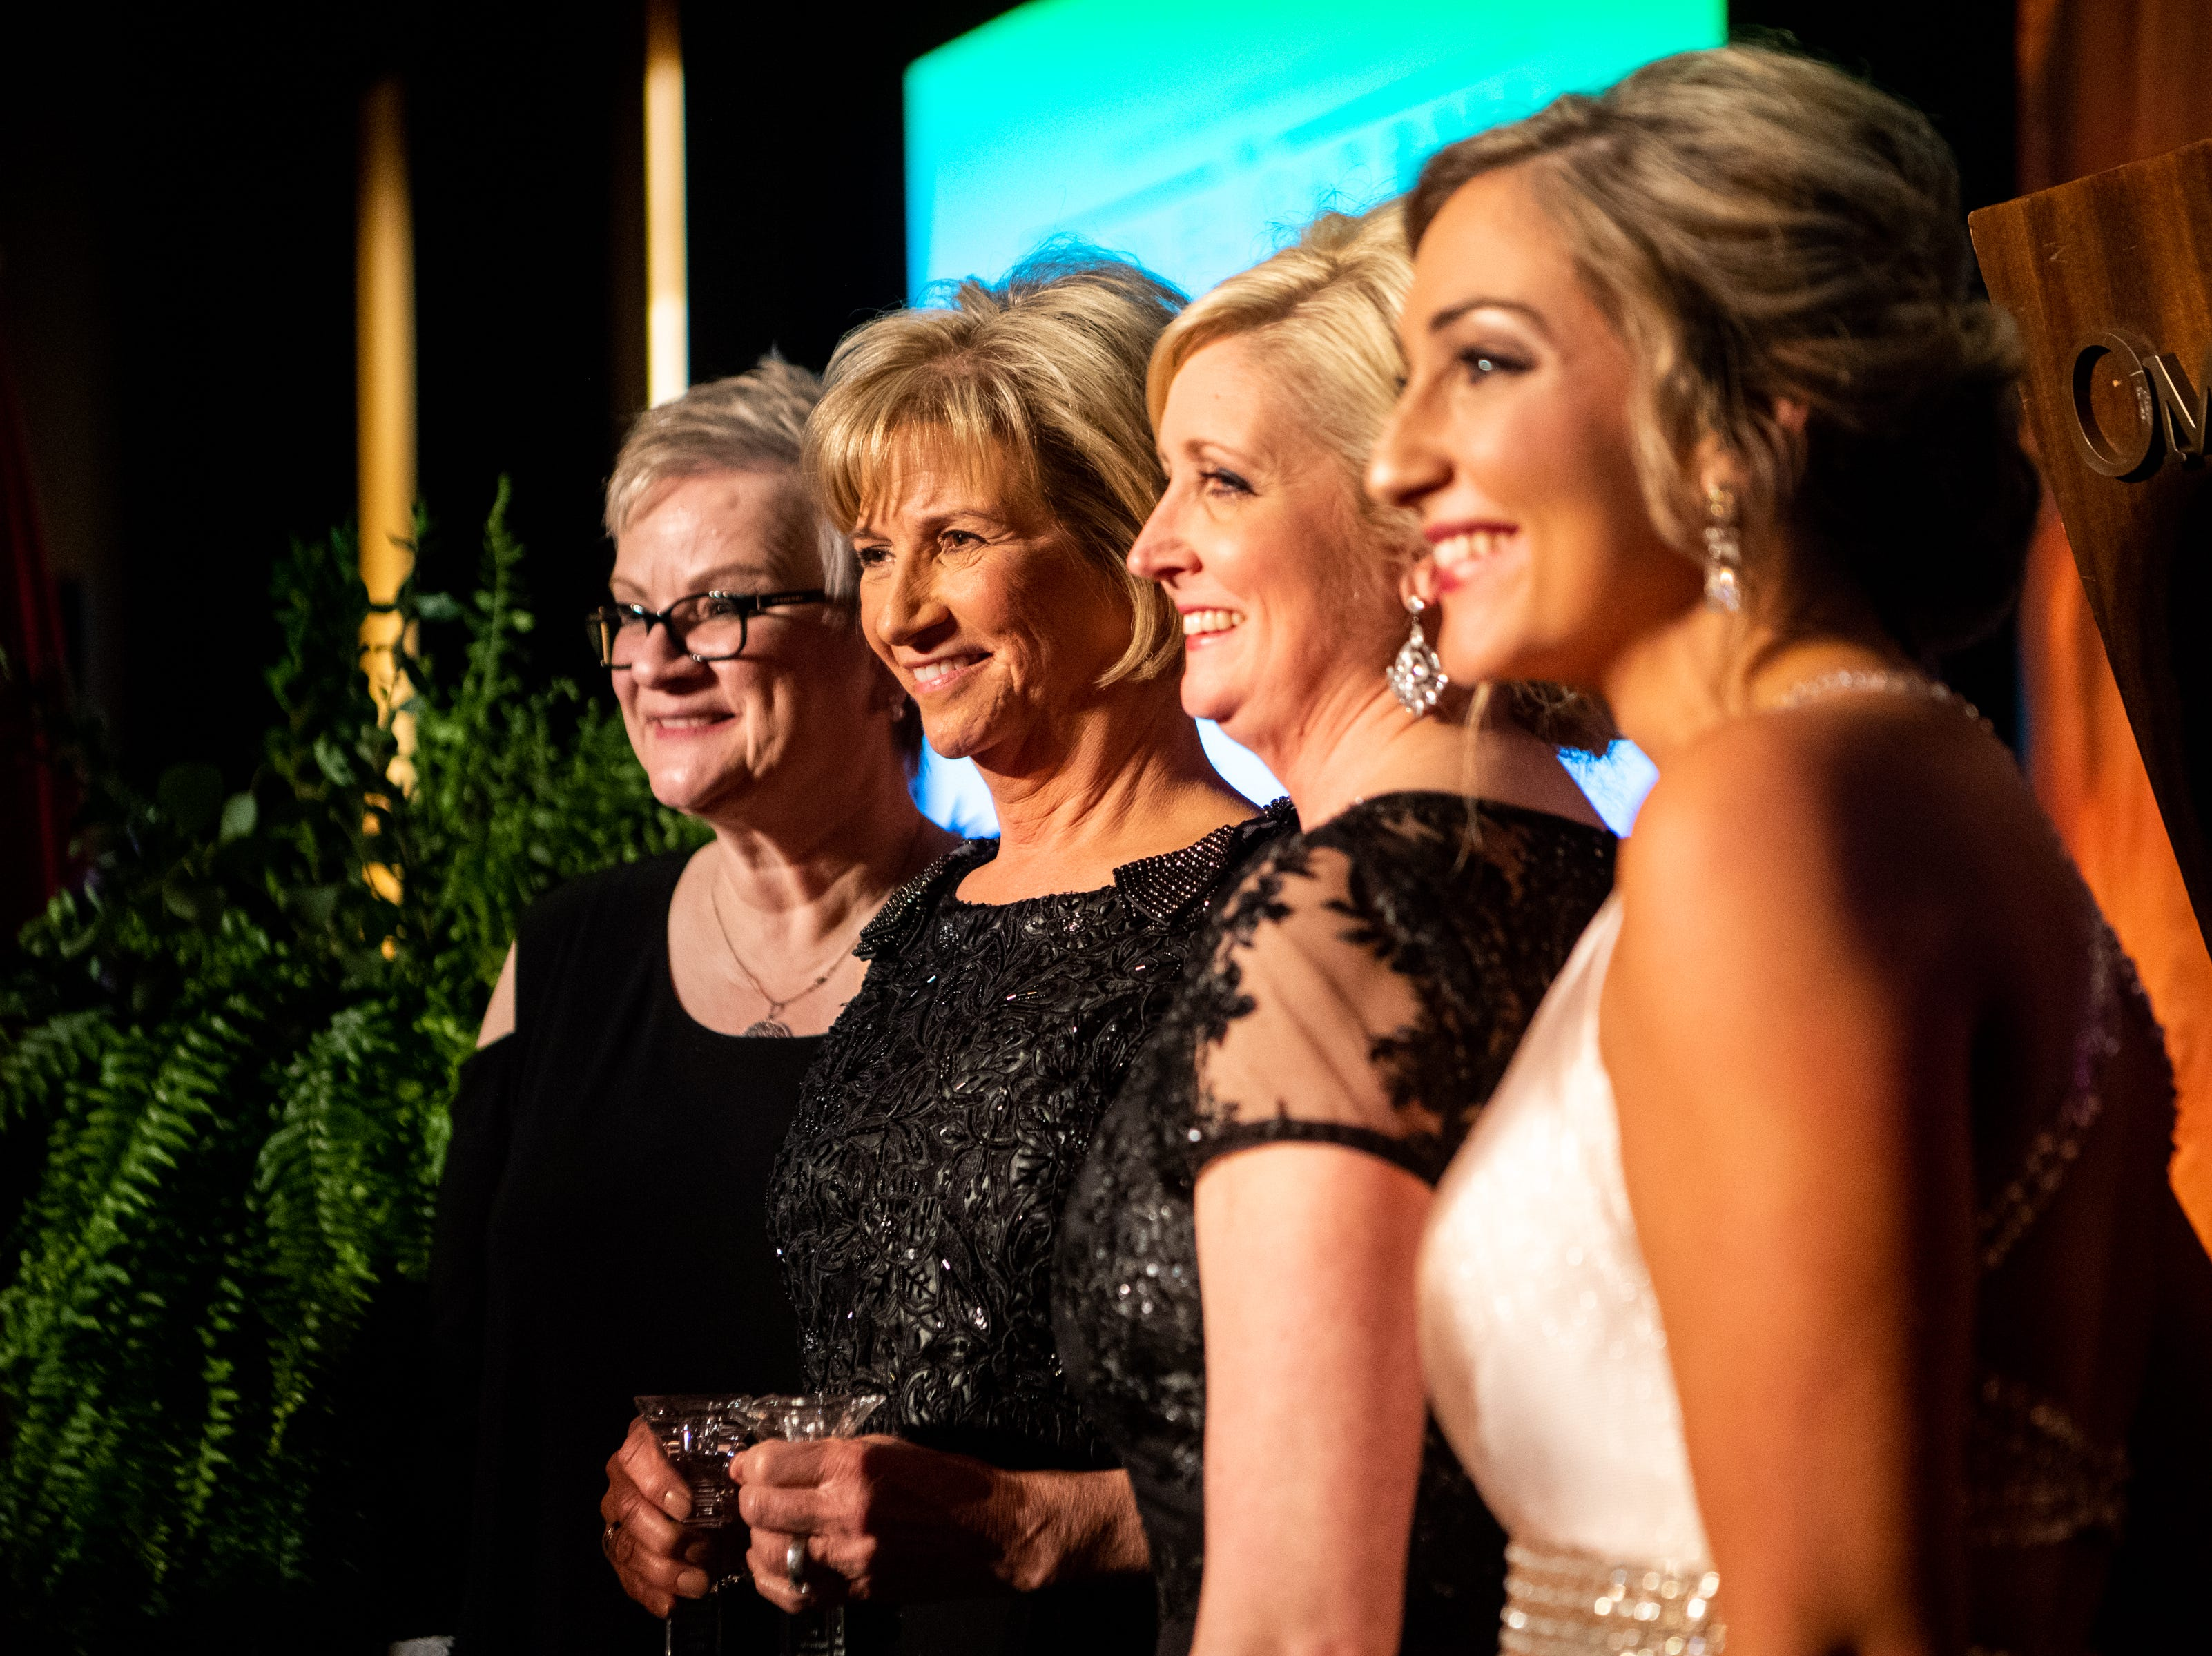 Dr. Jeannie Beauchamp receives the Wendell H. Gilbert Award during Austin Peay State University's annual Candlelight Ball at the Omni Nashville Hotel Saturday, March 16, 2019, in Nashville, Tenn.